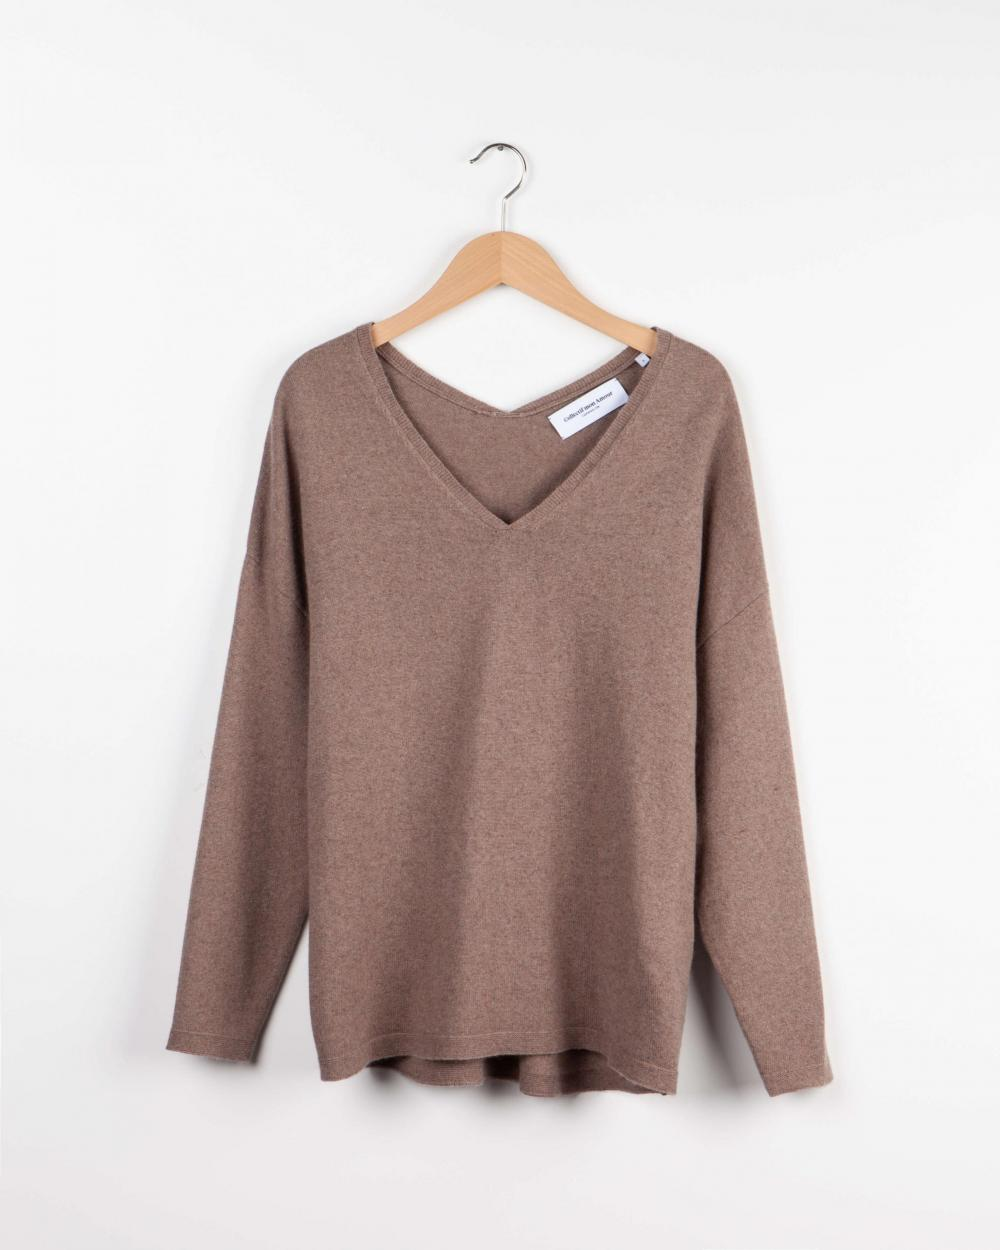 langarm-pullover-petra-taupe-581-1-0c445747